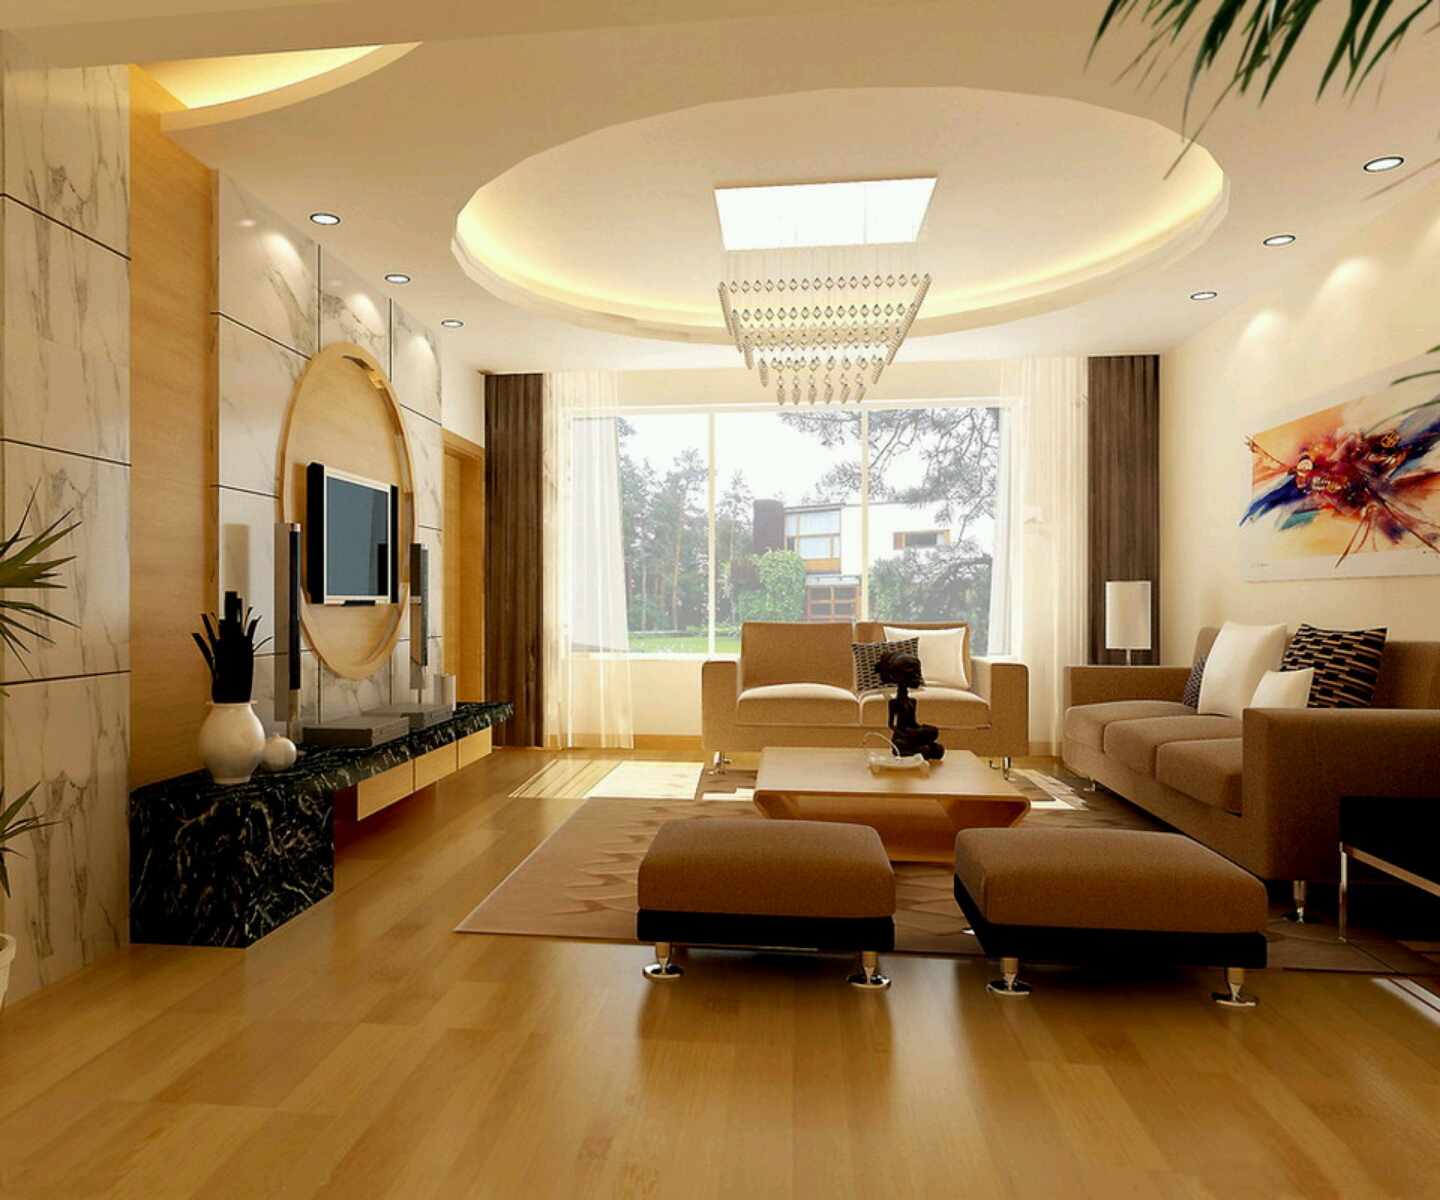 New home designs latest modern interior decoration for Modern lounge decor